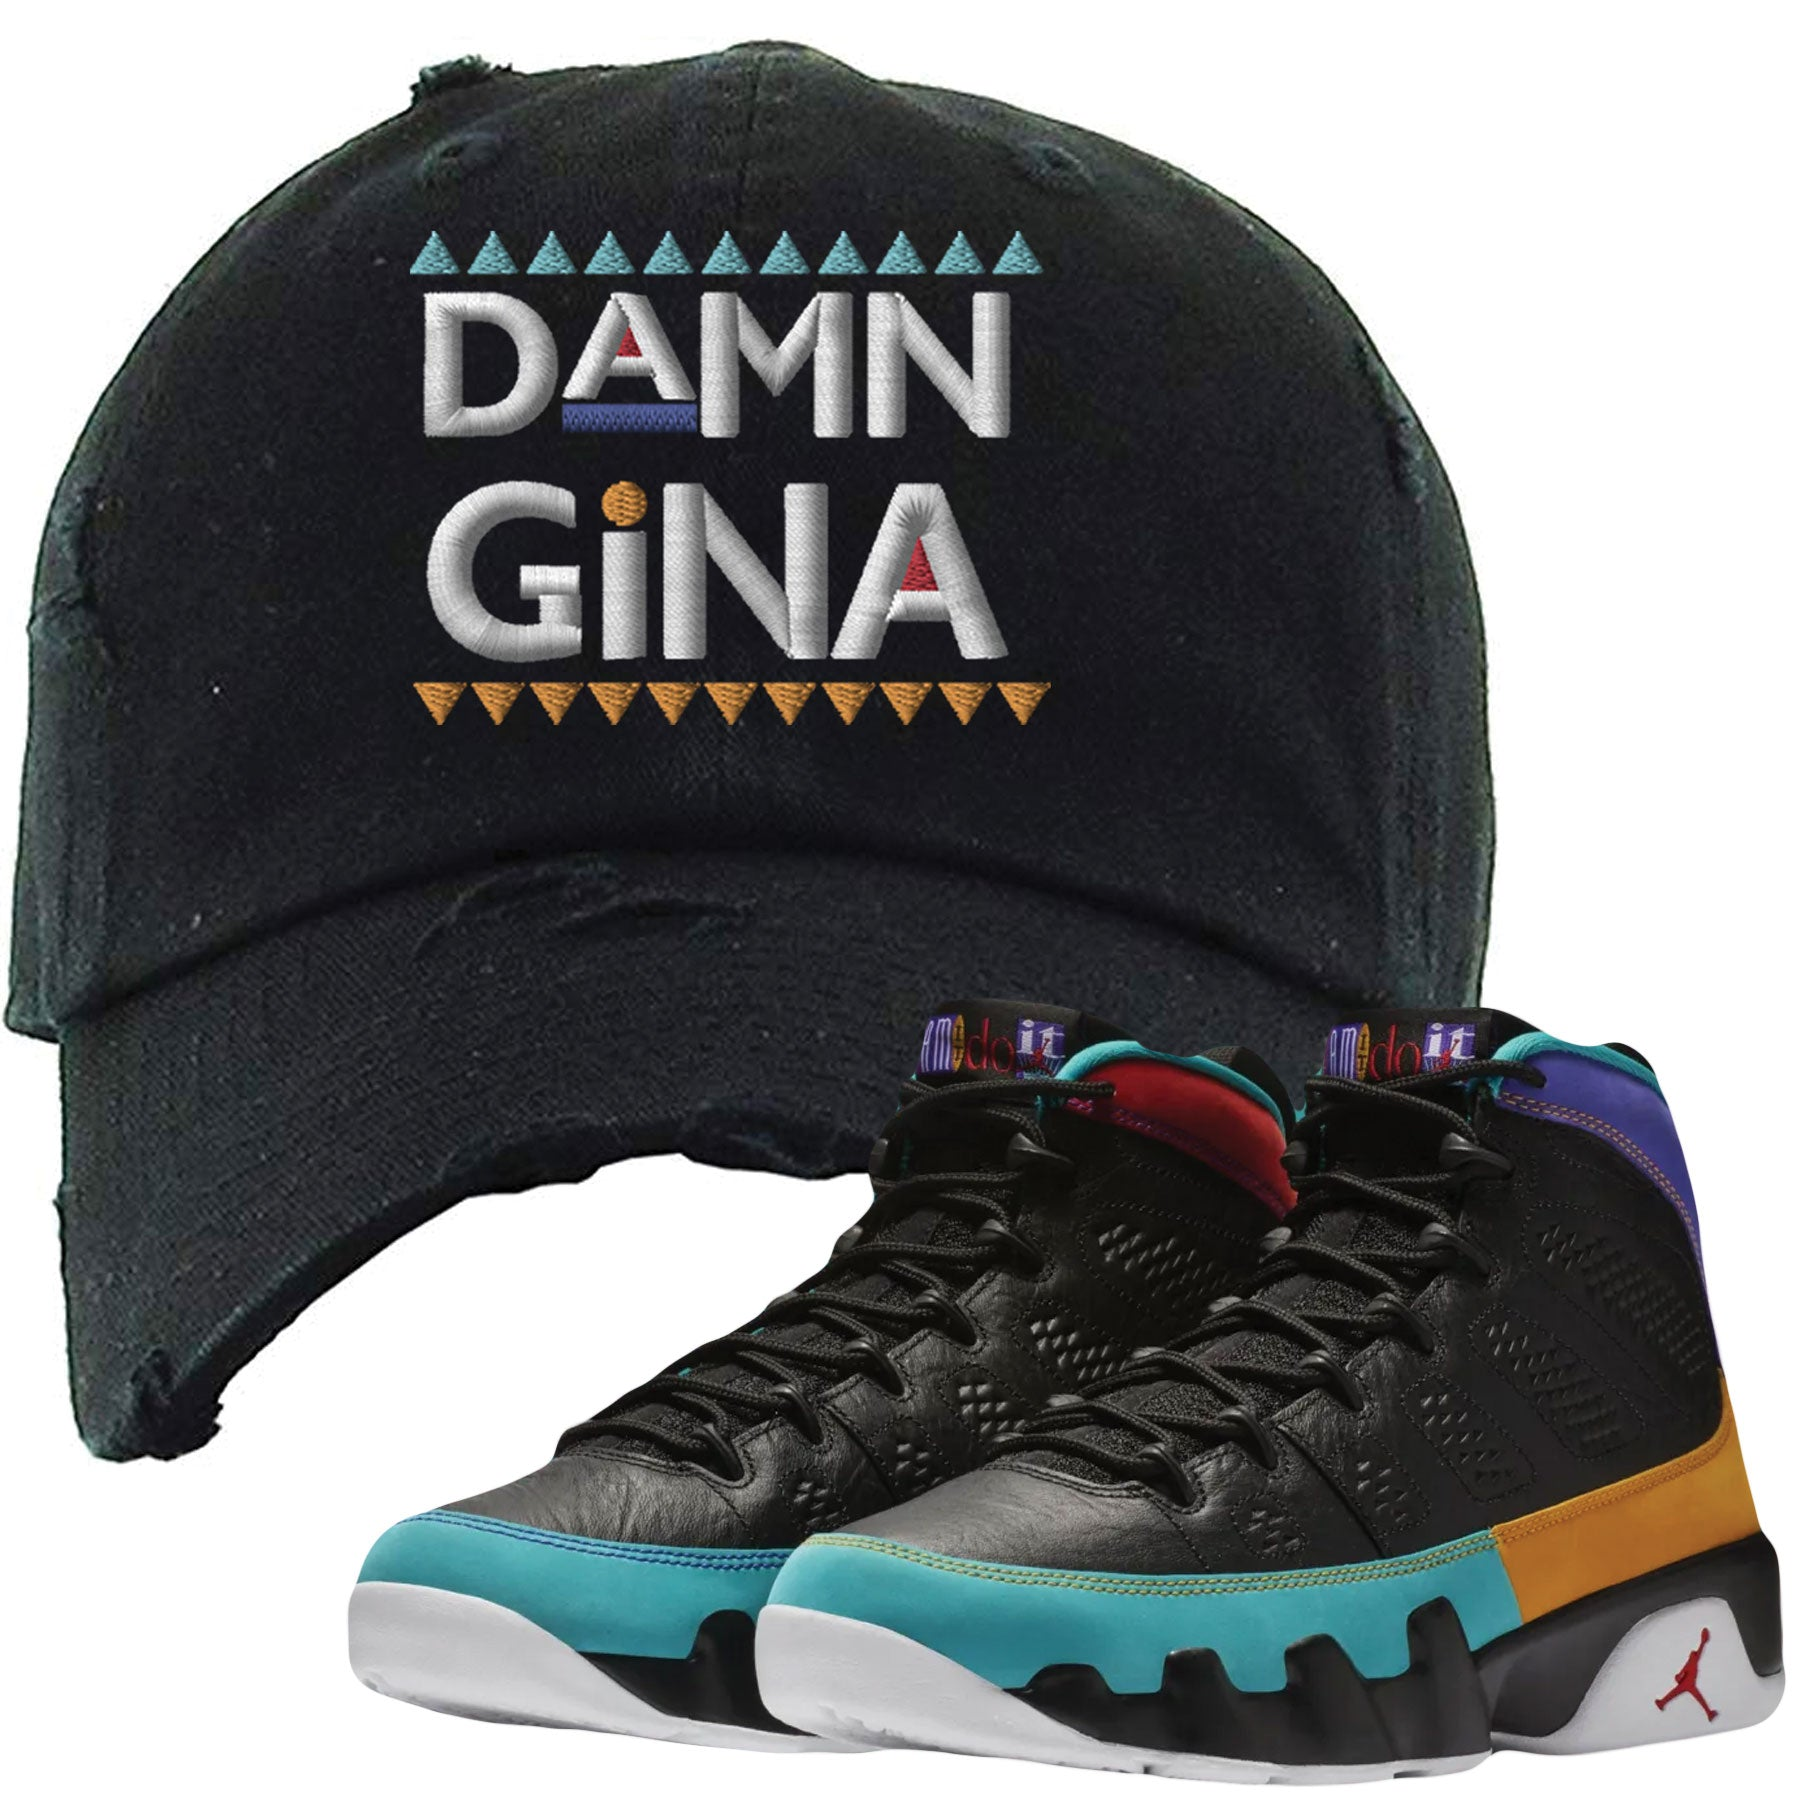 67aee38dd72 Shop sneaker matching clothing to match your pair of Jordan 9 Dream It Do  It Sneakers